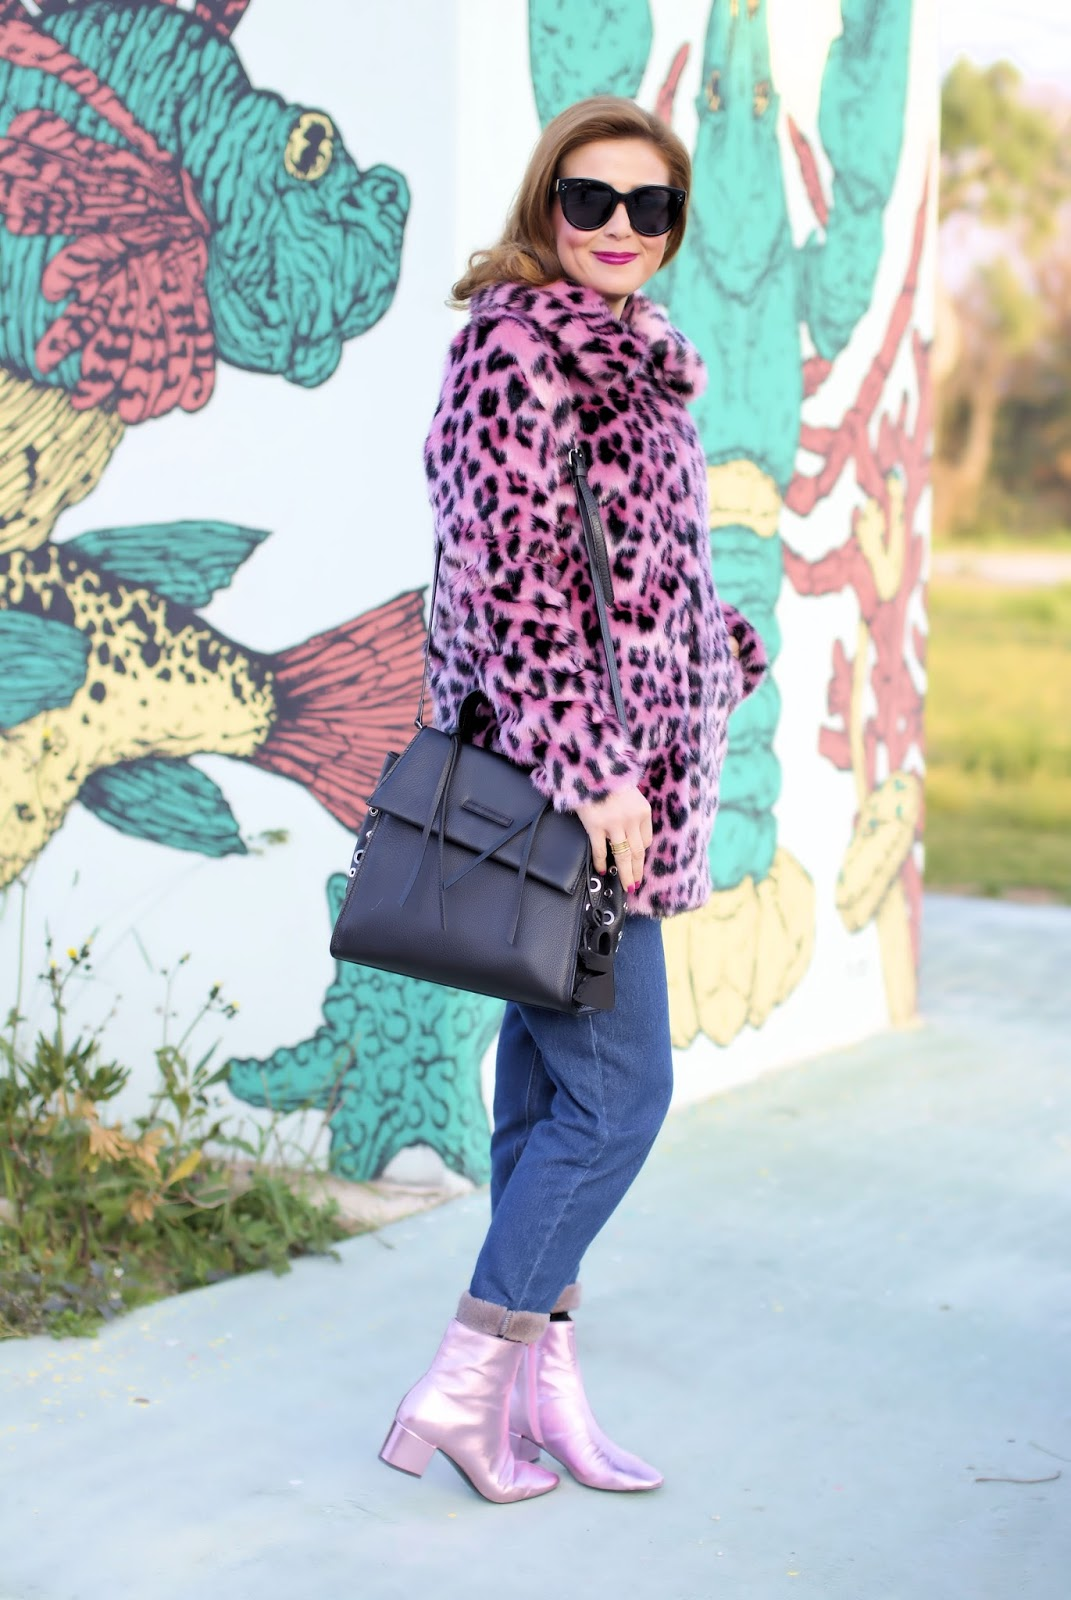 Giacca leopardo rosa su Fashion and Cookies fashion blog, fashion blogger style